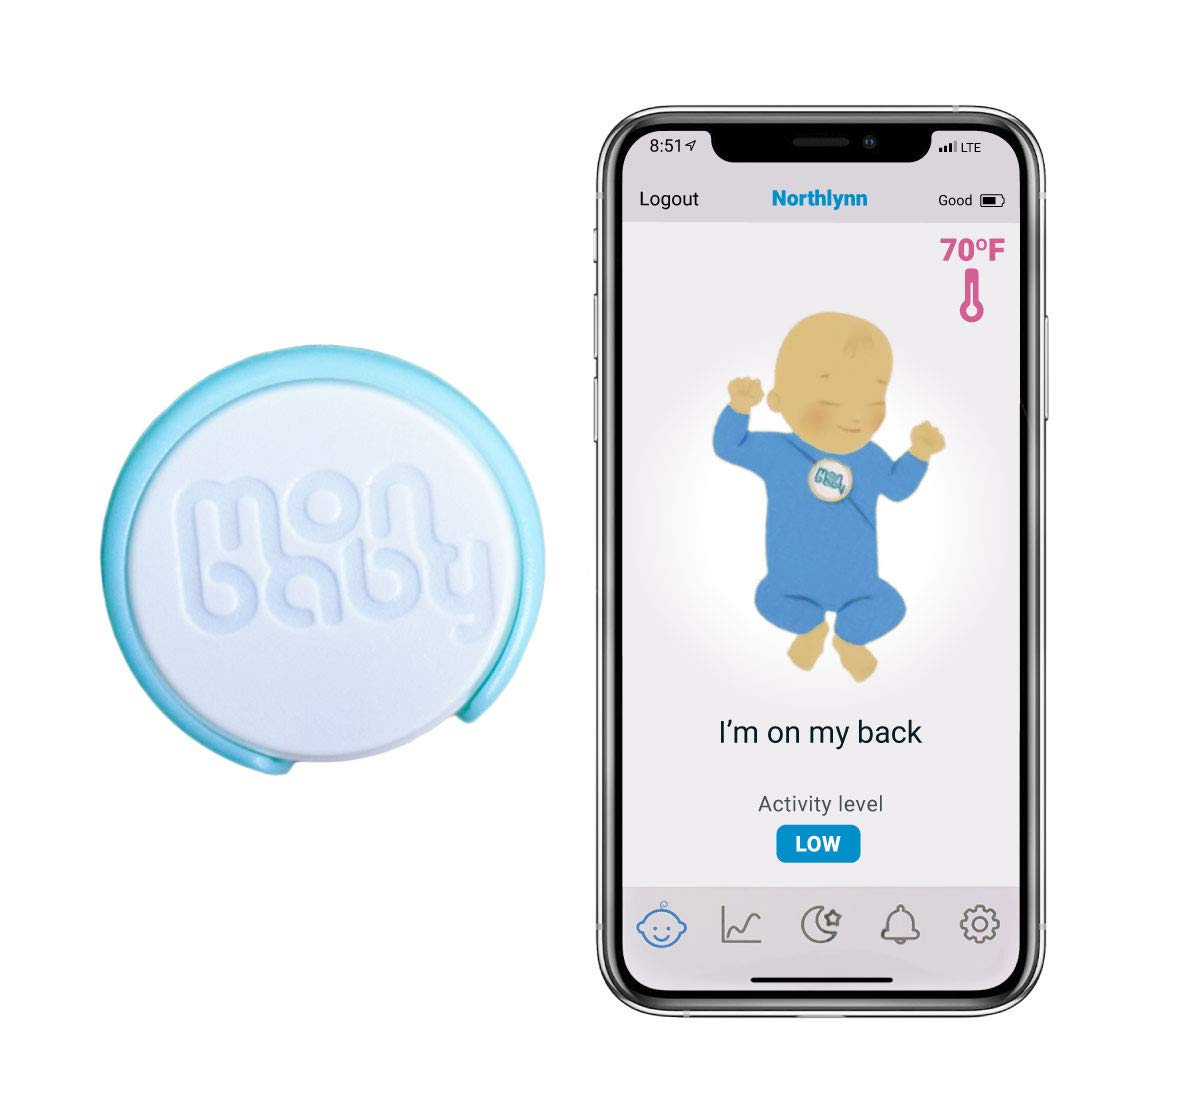 MonBaby (A) Baby Monitor with Breathing, Rollover and Temperature Sensors: Track Baby's Breathing, Body Movement, Ambient Temperature. No Skin Contact or Diaper Placement Necessary.